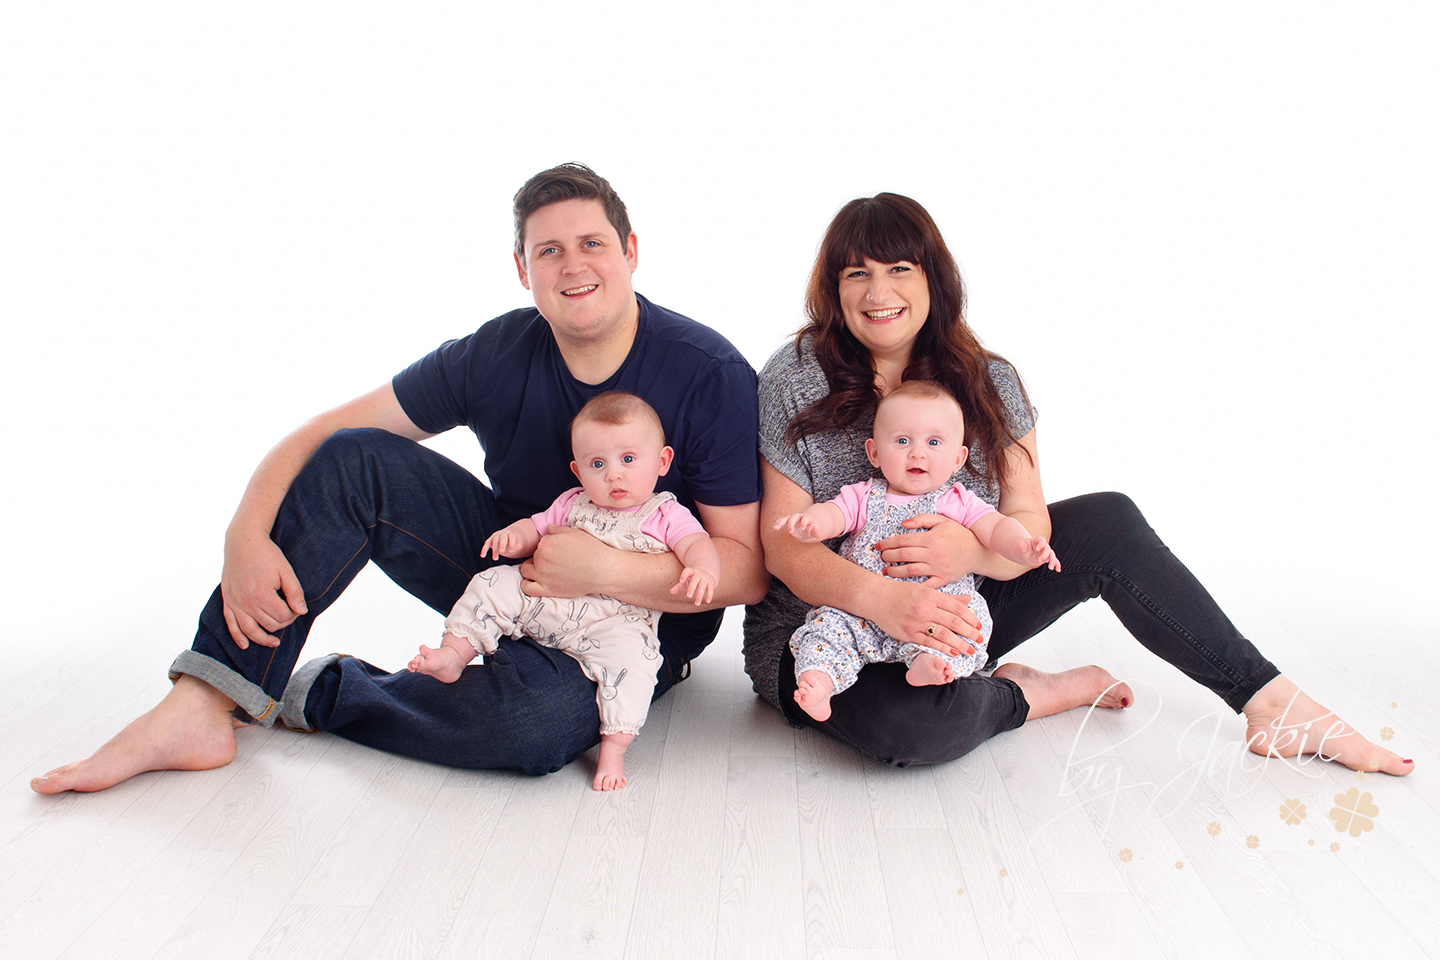 Family portrait photo shoot with baby girl twins by Babies By Jackie in her studio in Market Weighton, York, North Yorkshire, UK. Near Pocklington, Beverley, Asselby and Hessle.